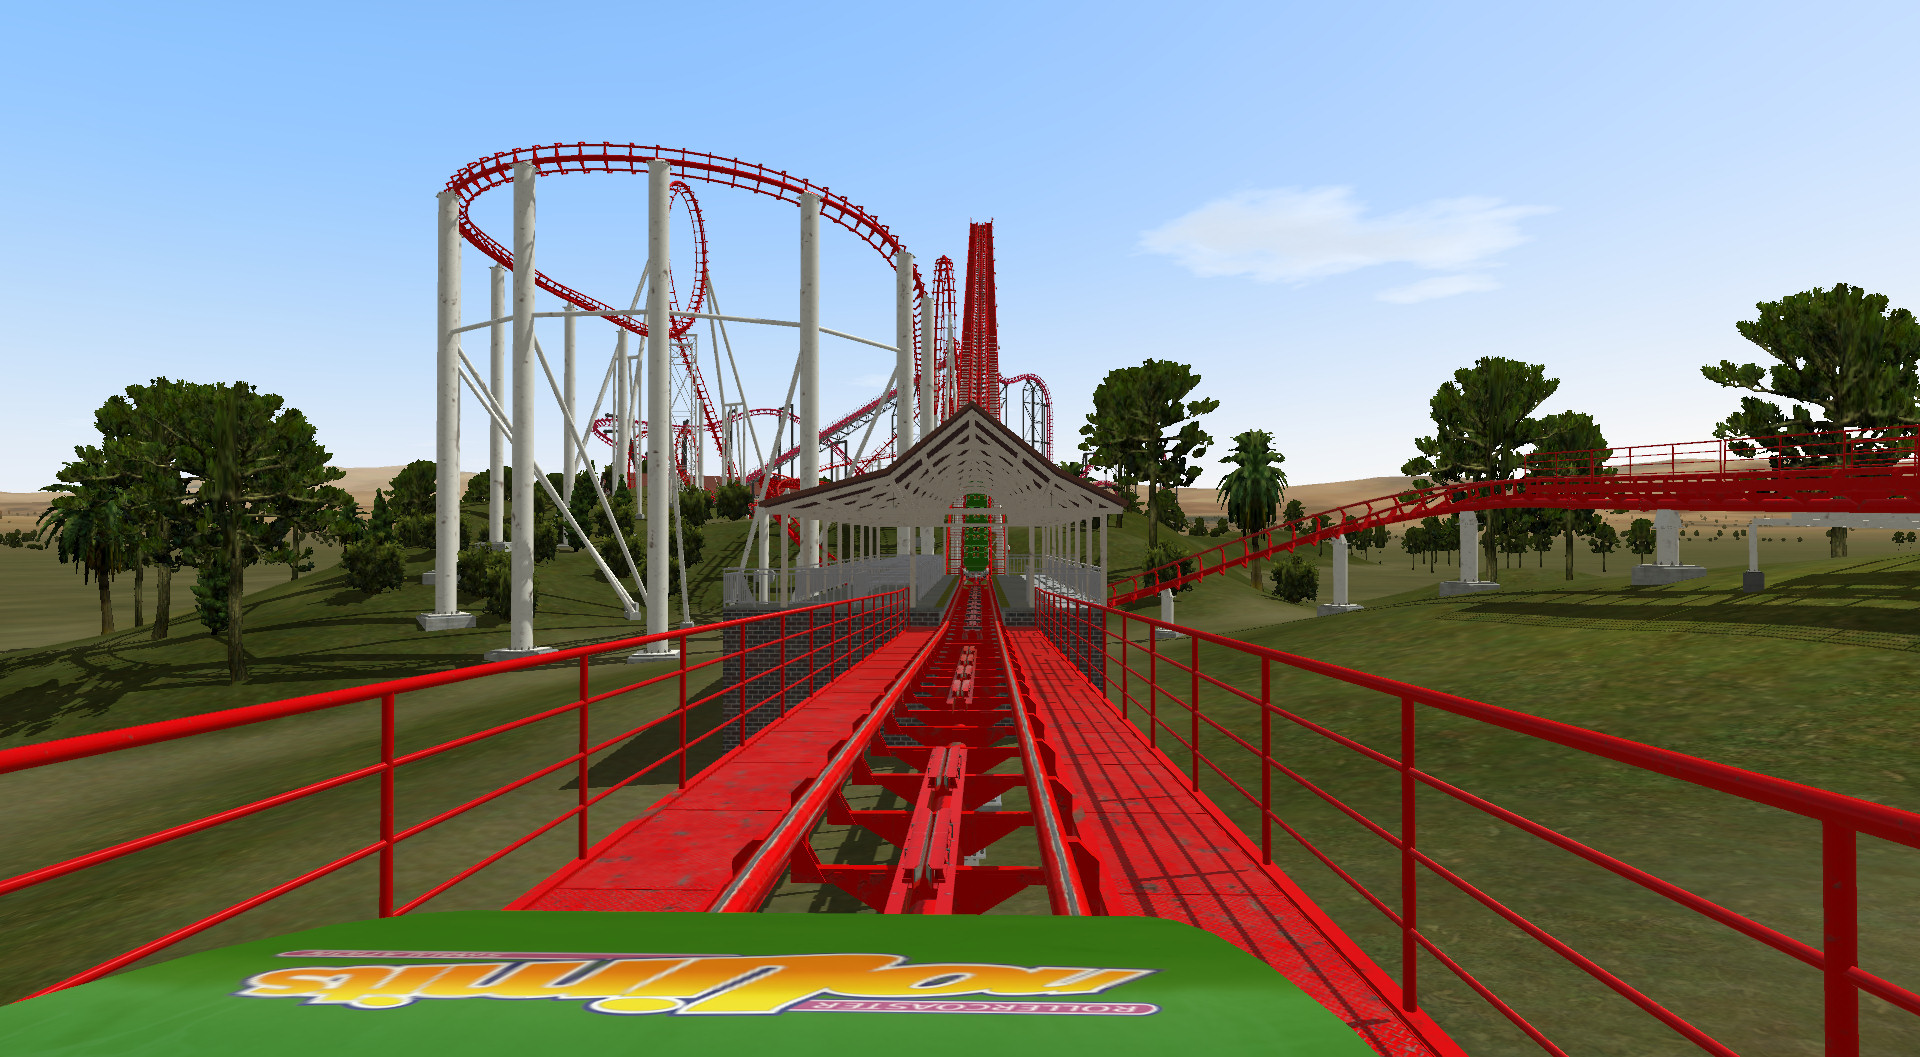 NoLimits Roller Coasters from the Community | Austin Tate's Blog